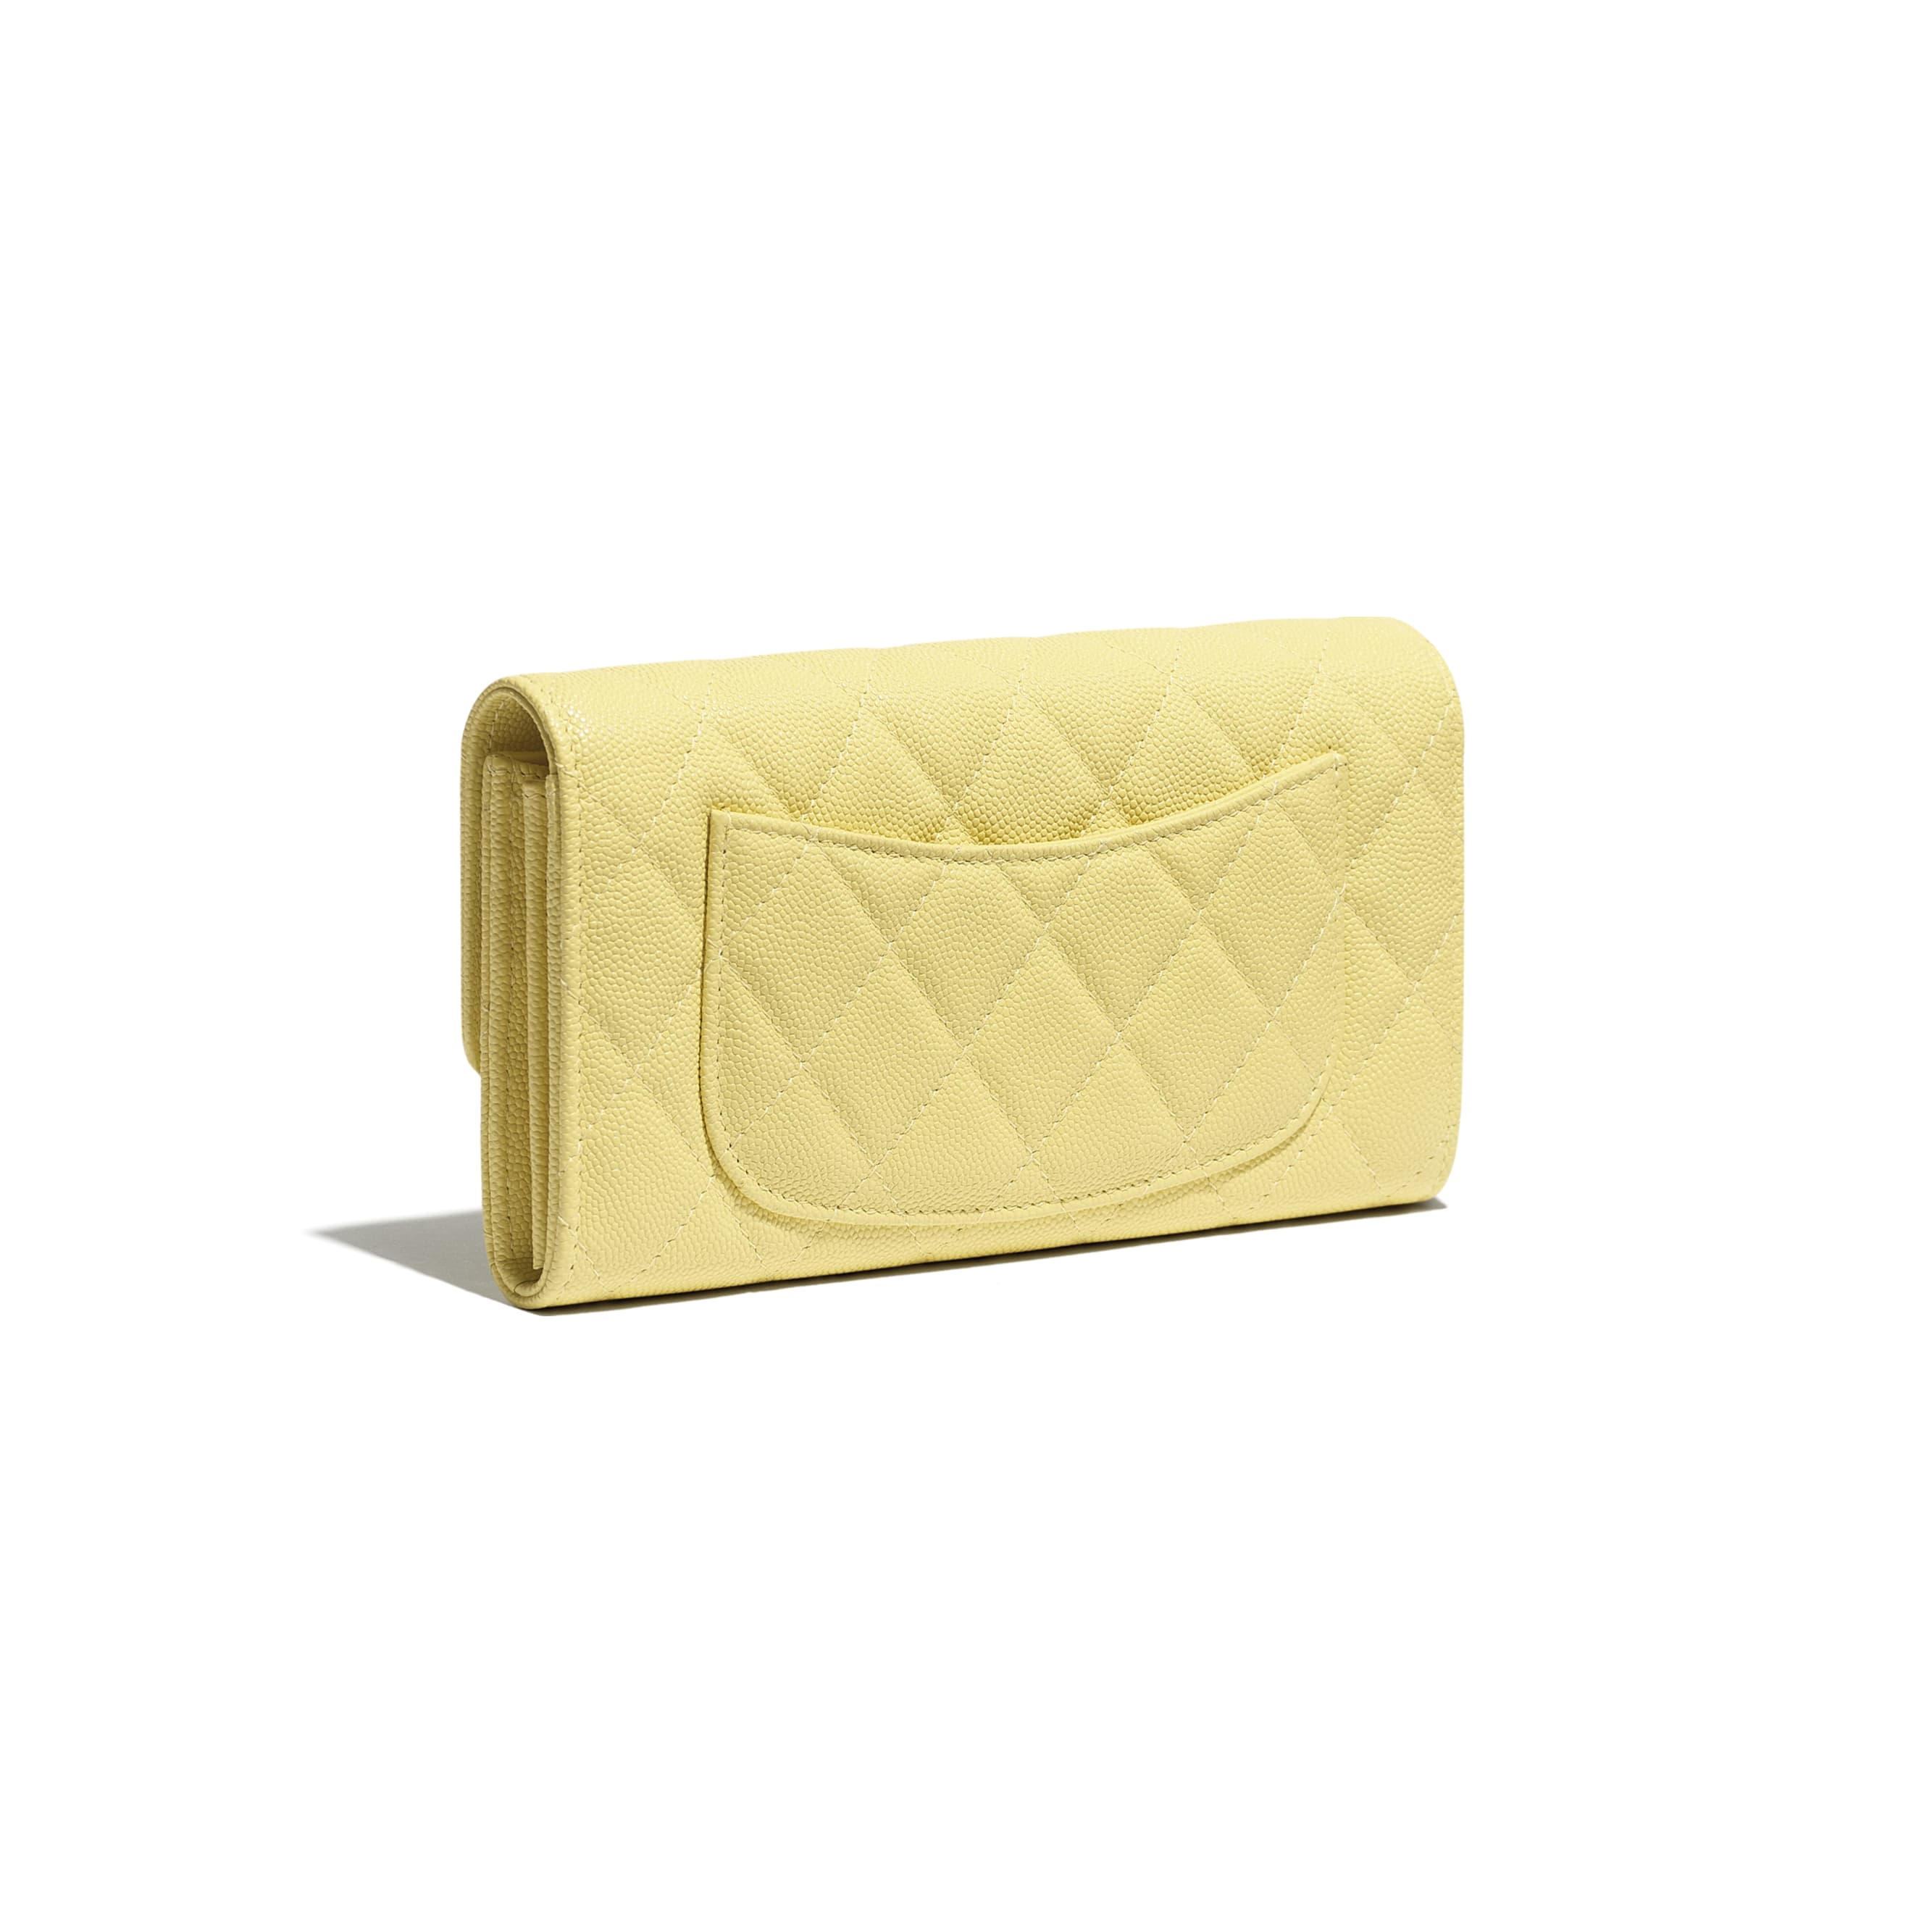 Classic Long Flap Wallet - Yellow - Grained Calfskin & Gold-Tone Metal - CHANEL - Extra view - see standard sized version